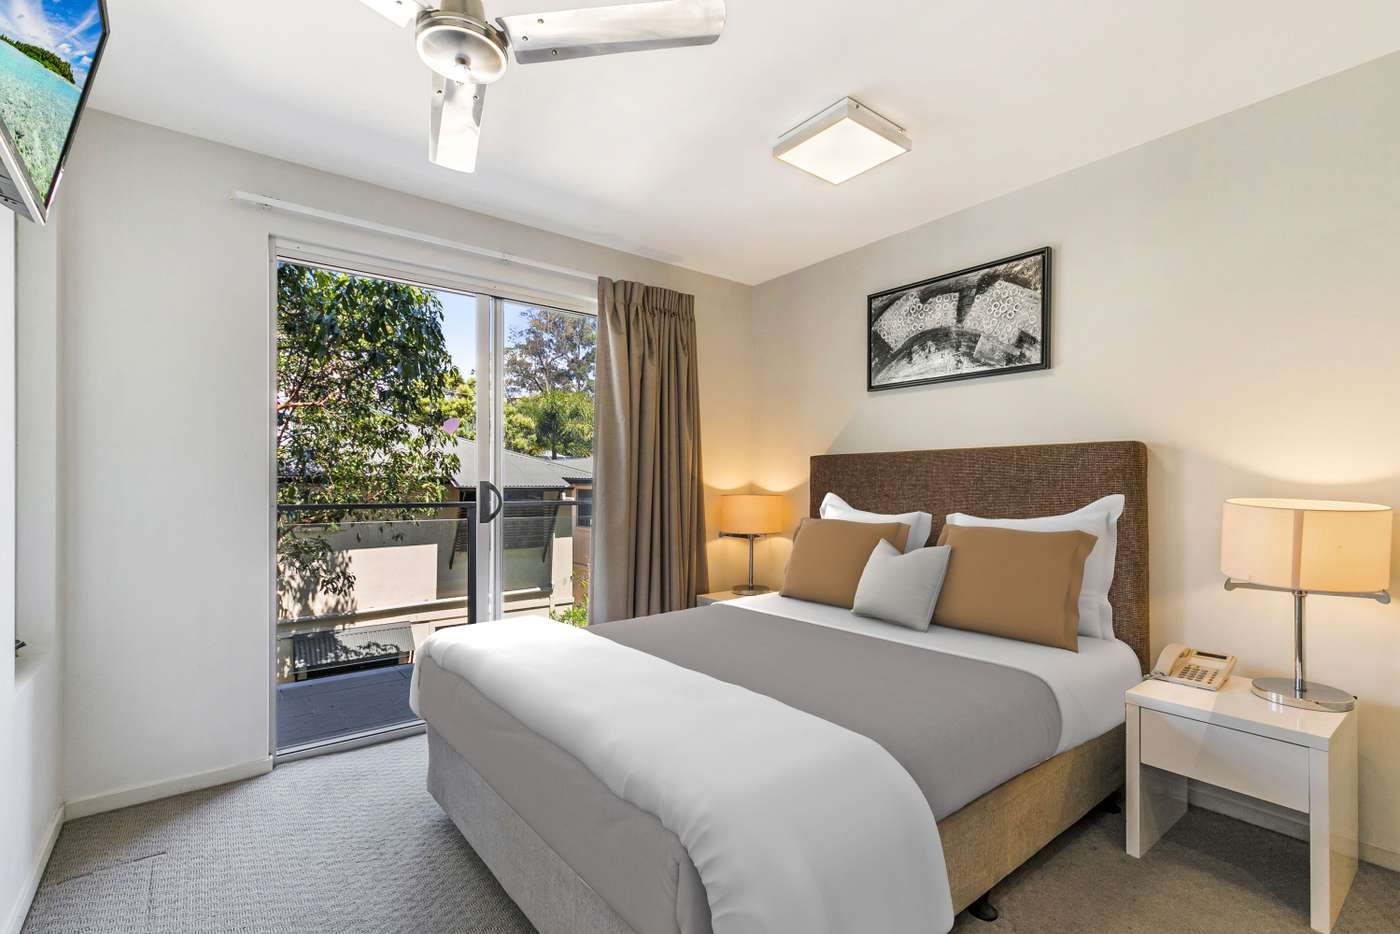 Sixth view of Homely unit listing, 16/18 Gailey Road, St Lucia QLD 4067